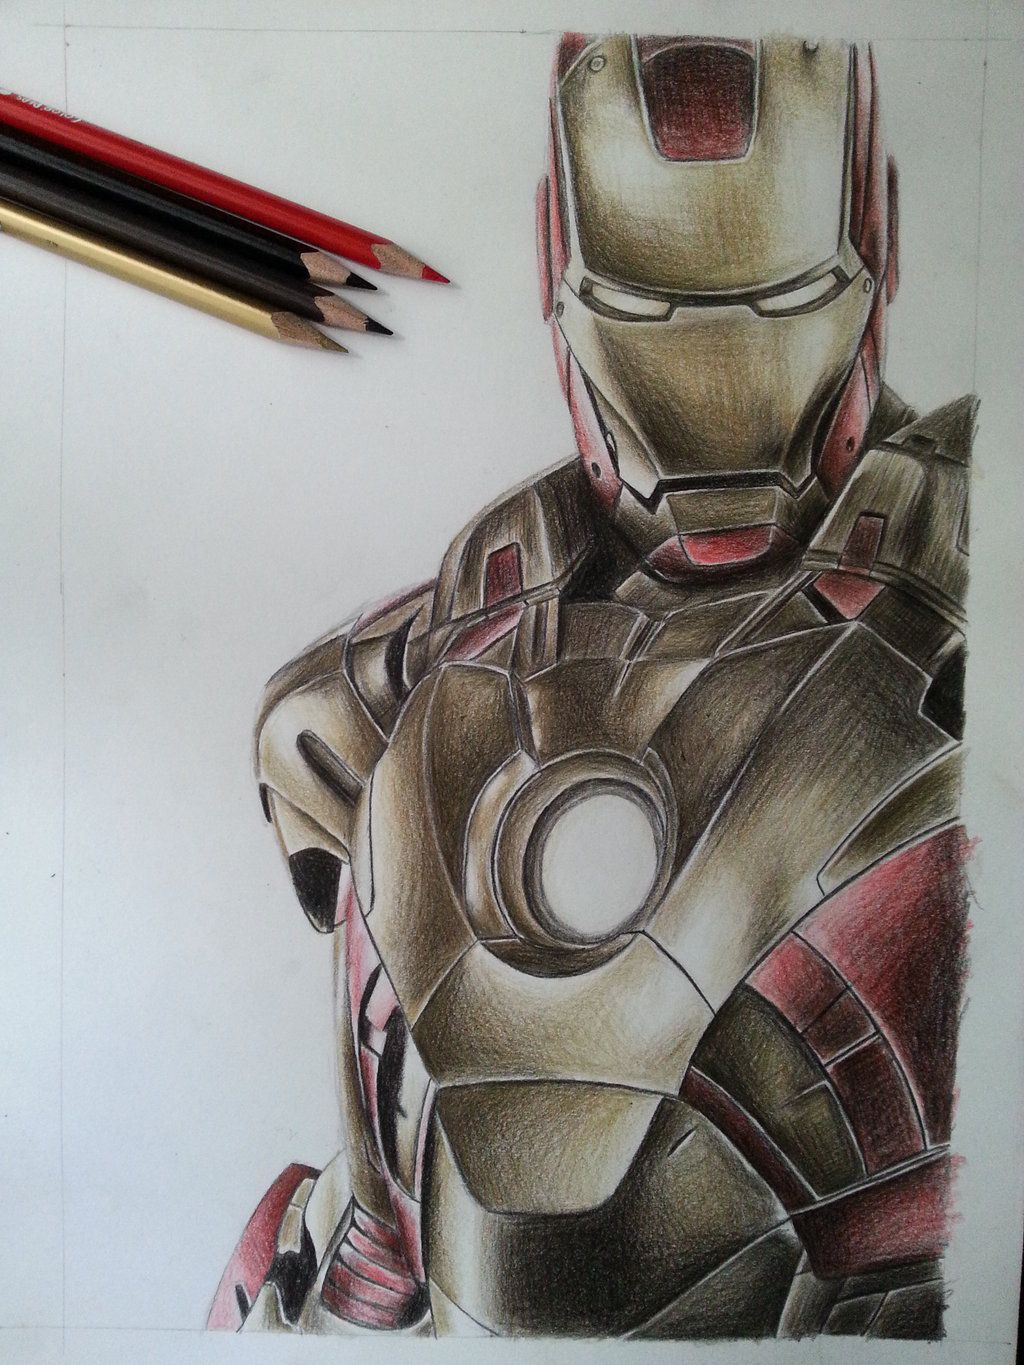 Iron Man Colored Drawings Http://www.deviantart.com/art/ iron - man ...